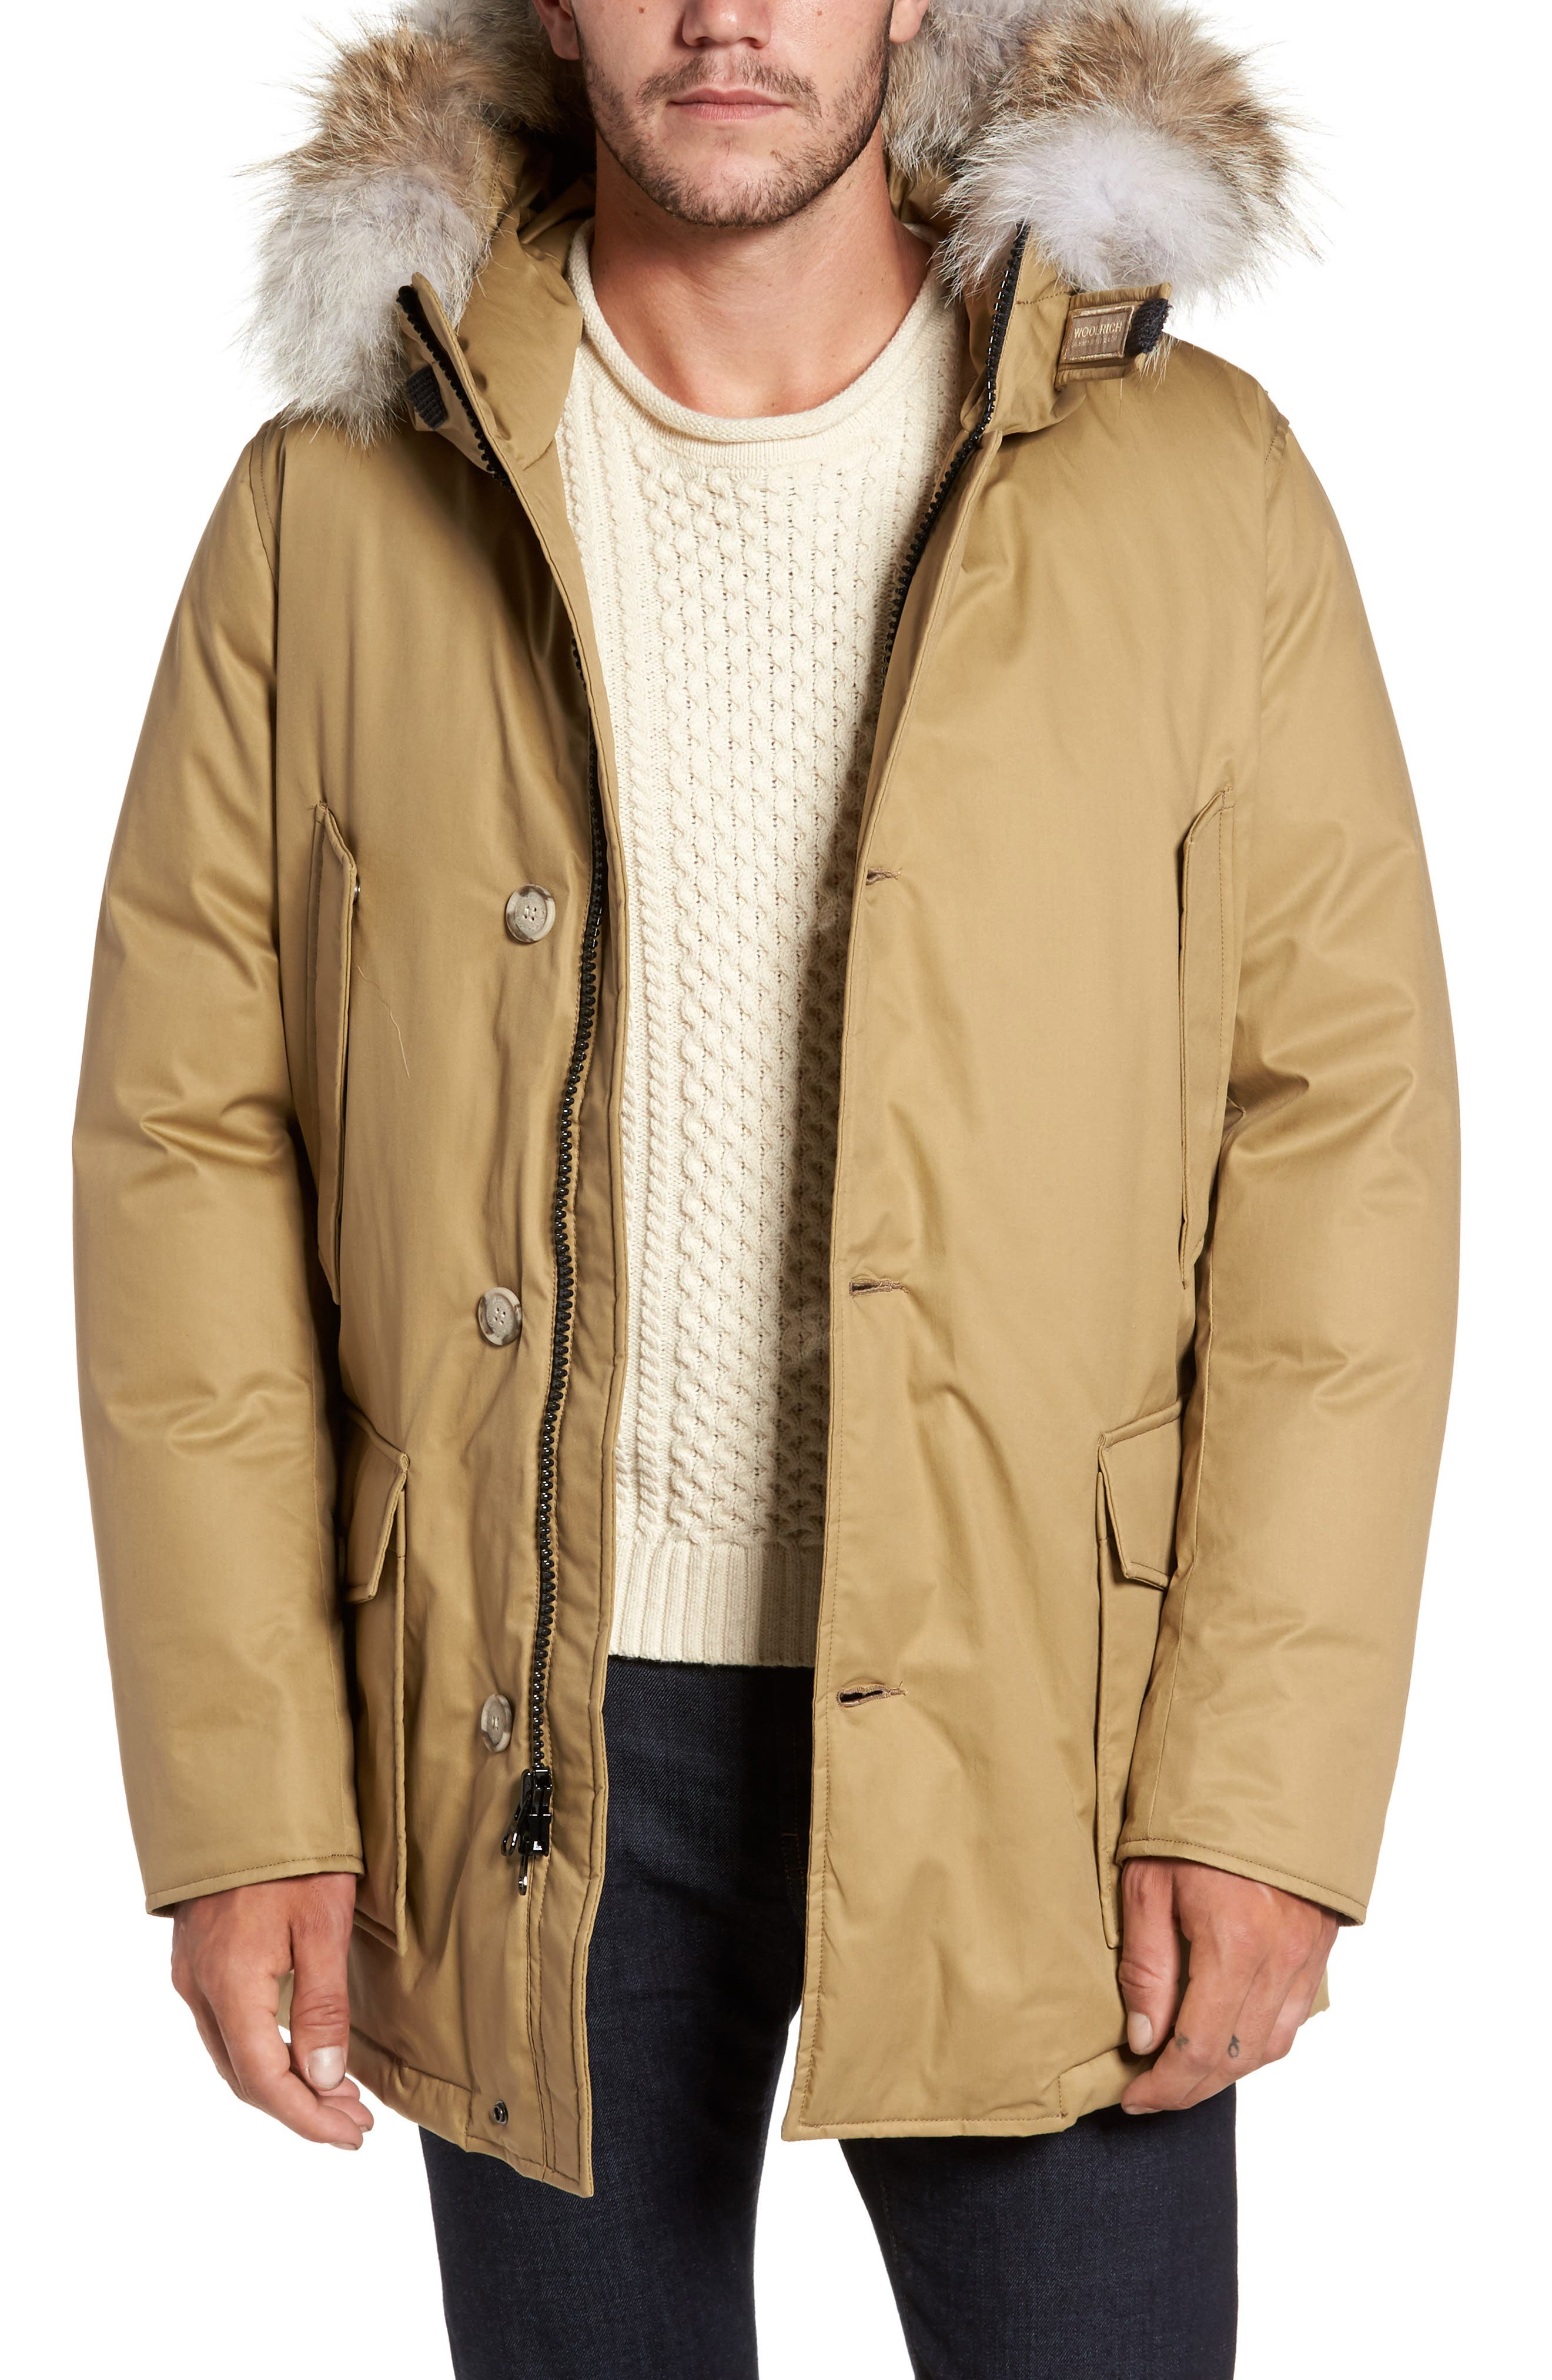 John Rich & Bros. Laminated Cotton Down Parka with Genuine Coyote Fur Trim,                             Alternate thumbnail 8, color,